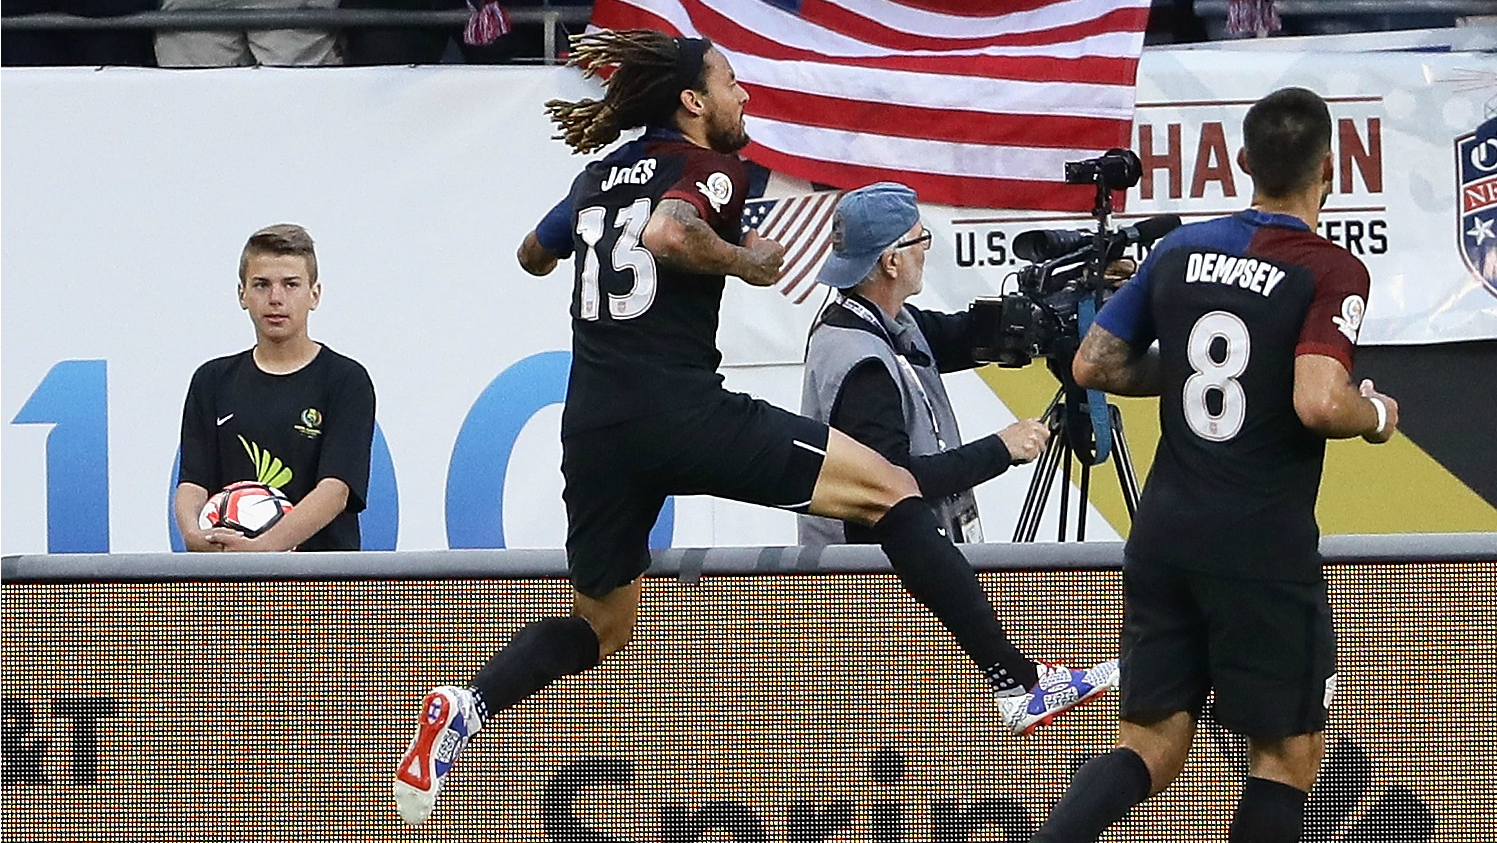 Jermaine Jones turned back the clock and was the best player for the USMNT